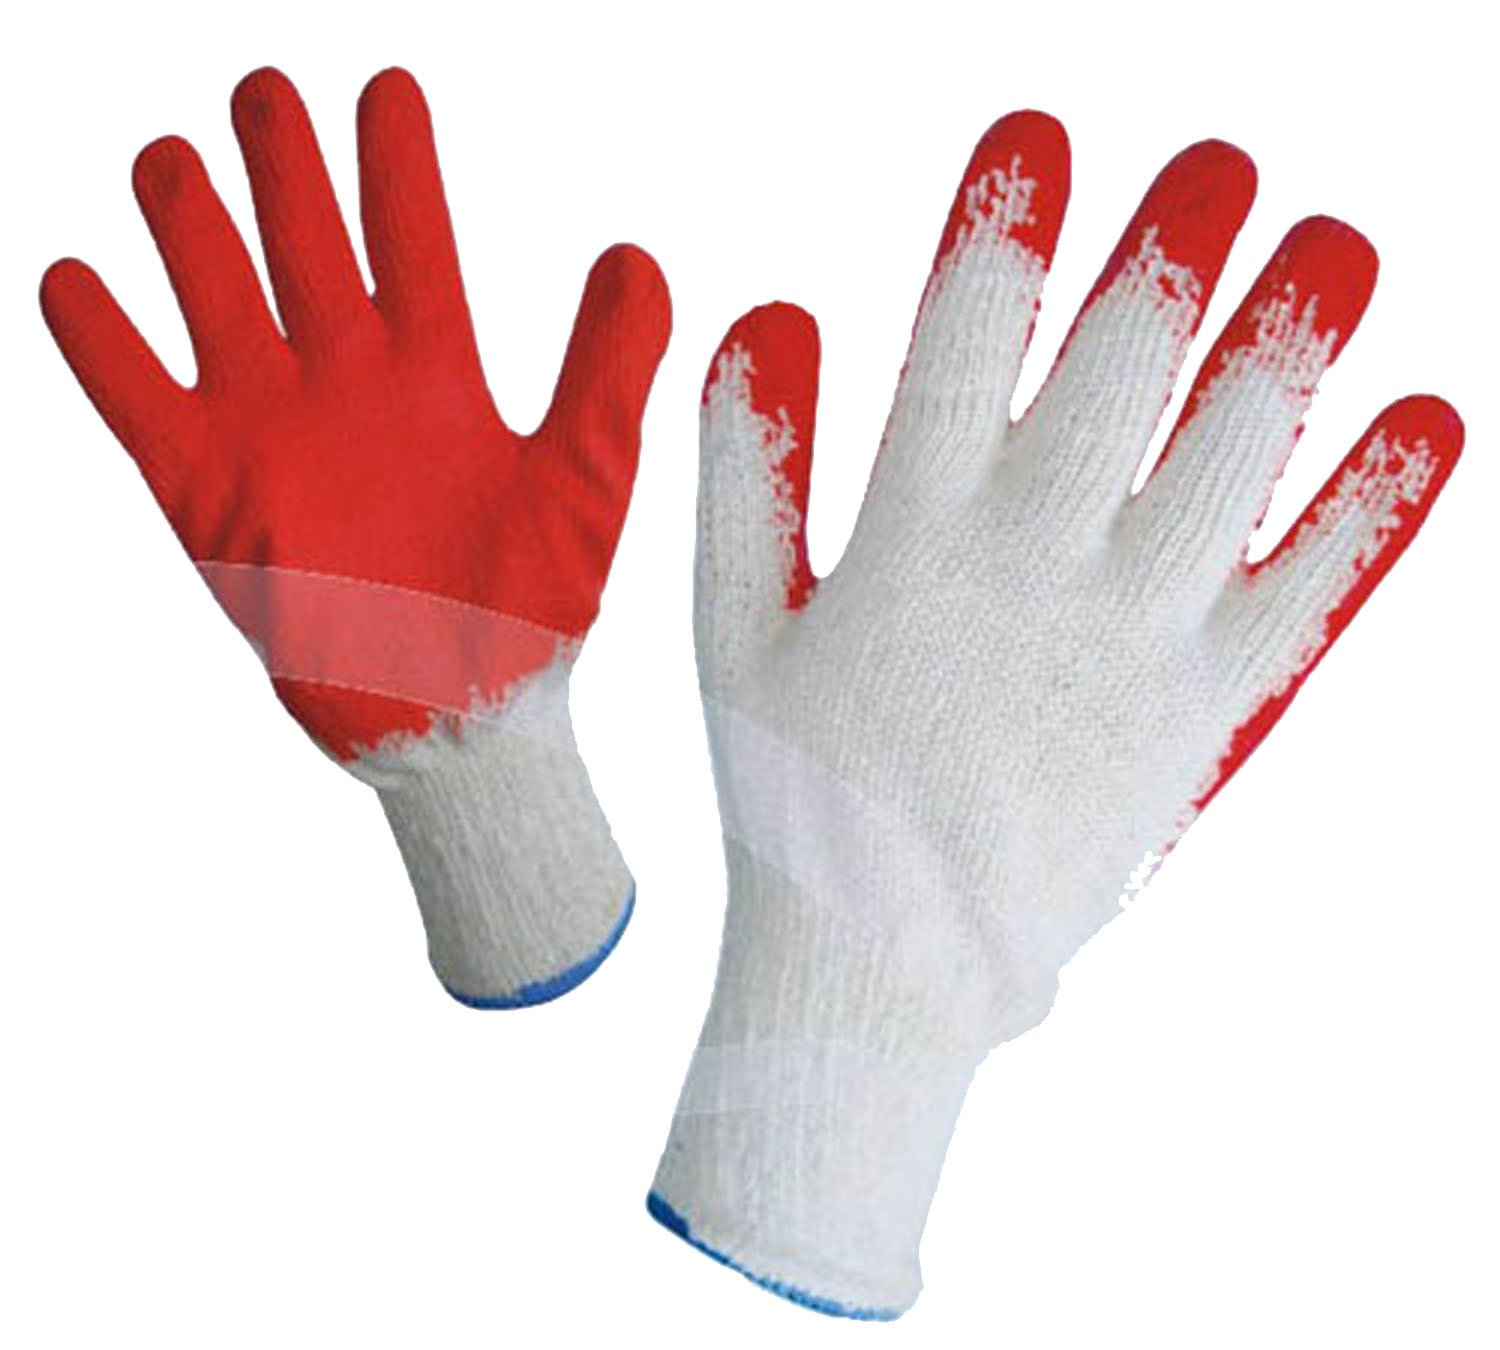 GF Gloves 3106-300 Economical String Knit Latex Dipped Palm Gloves, Nitrile Coated Work Gloves for General Purpose, One Size, Red (Pack of 300) by G & F Products